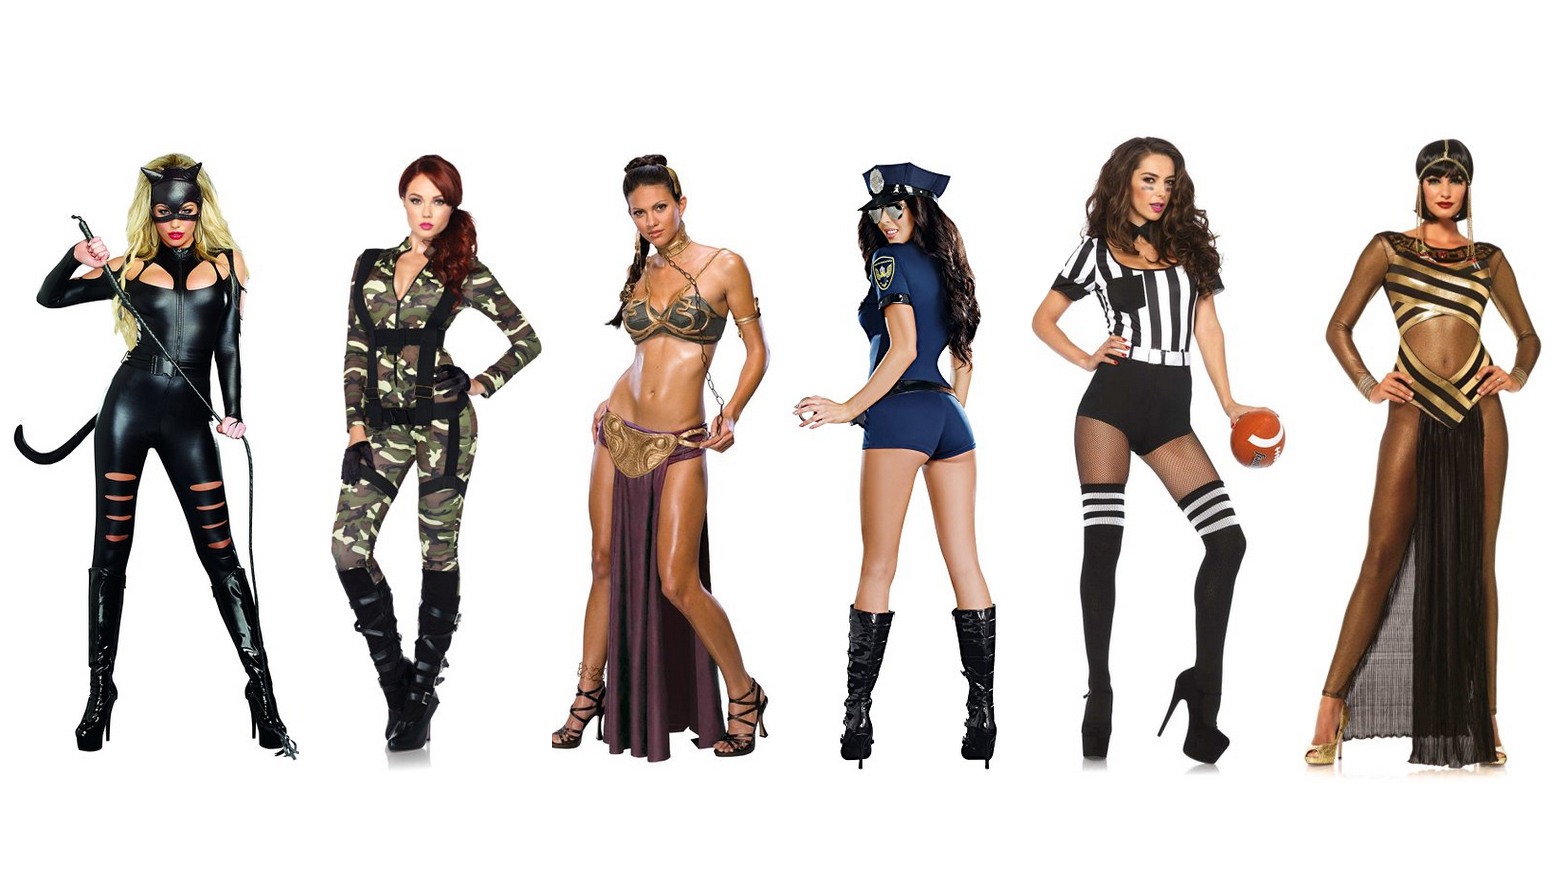 halloween costumes, halloween costumes for women, sexy halloween costumes, best sexy halloween costumes, costumes, cheap halloween costumes, sexy costumes, adult halloween costumes, halloween costume ideas, sexy halloween costumes for women, costumes for women, womens halloween costumes, halloween outfits, skeleton costume, skeleton costumes, forplay, forplay costumes, Leg avenue, Leg Avenue costume, leg avenue costumes, egyptian goddess costume, Isis costume, egyptian costumes, goddess costume, california costumes, fallen angel costume, sexy angel costume, angel costume, dark angel costume, dc comics, wonder woman costume, rubies costumes, sexy wonder woman costume, corset costumes, army costume, military costume, Dreamgirl, Dreamgirl costumes, cop costume, police costume, sexy cop costume, sexy police costume, sexy cop halloween costume, cop halloween costume, police officer costume, police halloween costume, referee costume, sexy referee costume, Cat Woman Costume, Catwoman Costume, Sexy Catwoman Costume, catwoman halloween costume, catwoman outfit, catwoman suit, Princess Leia costume, princess leia slave costume, princess leia, sexy princess leia costume, slave leia, slave leia costume, princess leia slave, star wars princess leia, leia slave costume, sexy sailor costume, sailor costume, womens sailor costume, sailor halloween costume, sailor costume for women